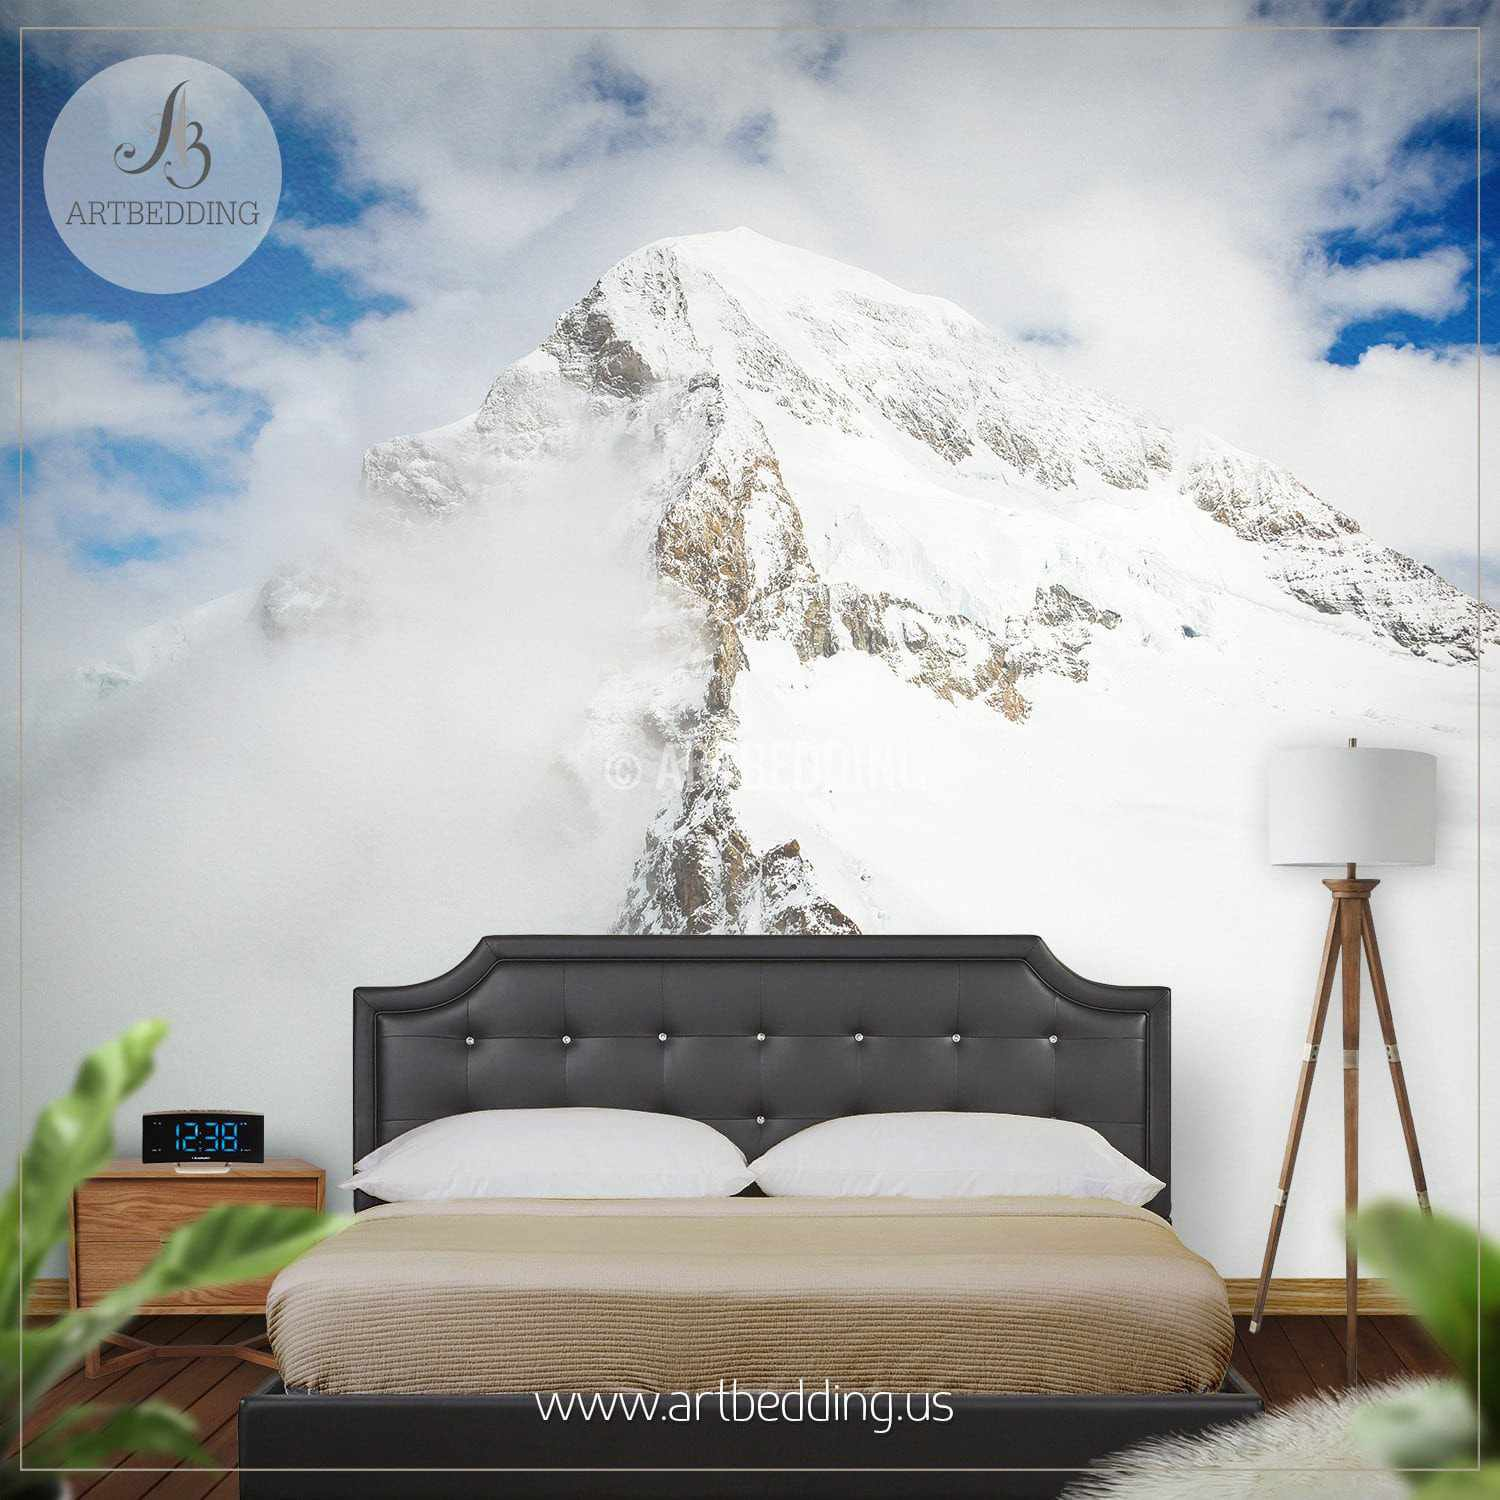 Wall Murals peel and stick self adhesive vinyl HD print Tagged r